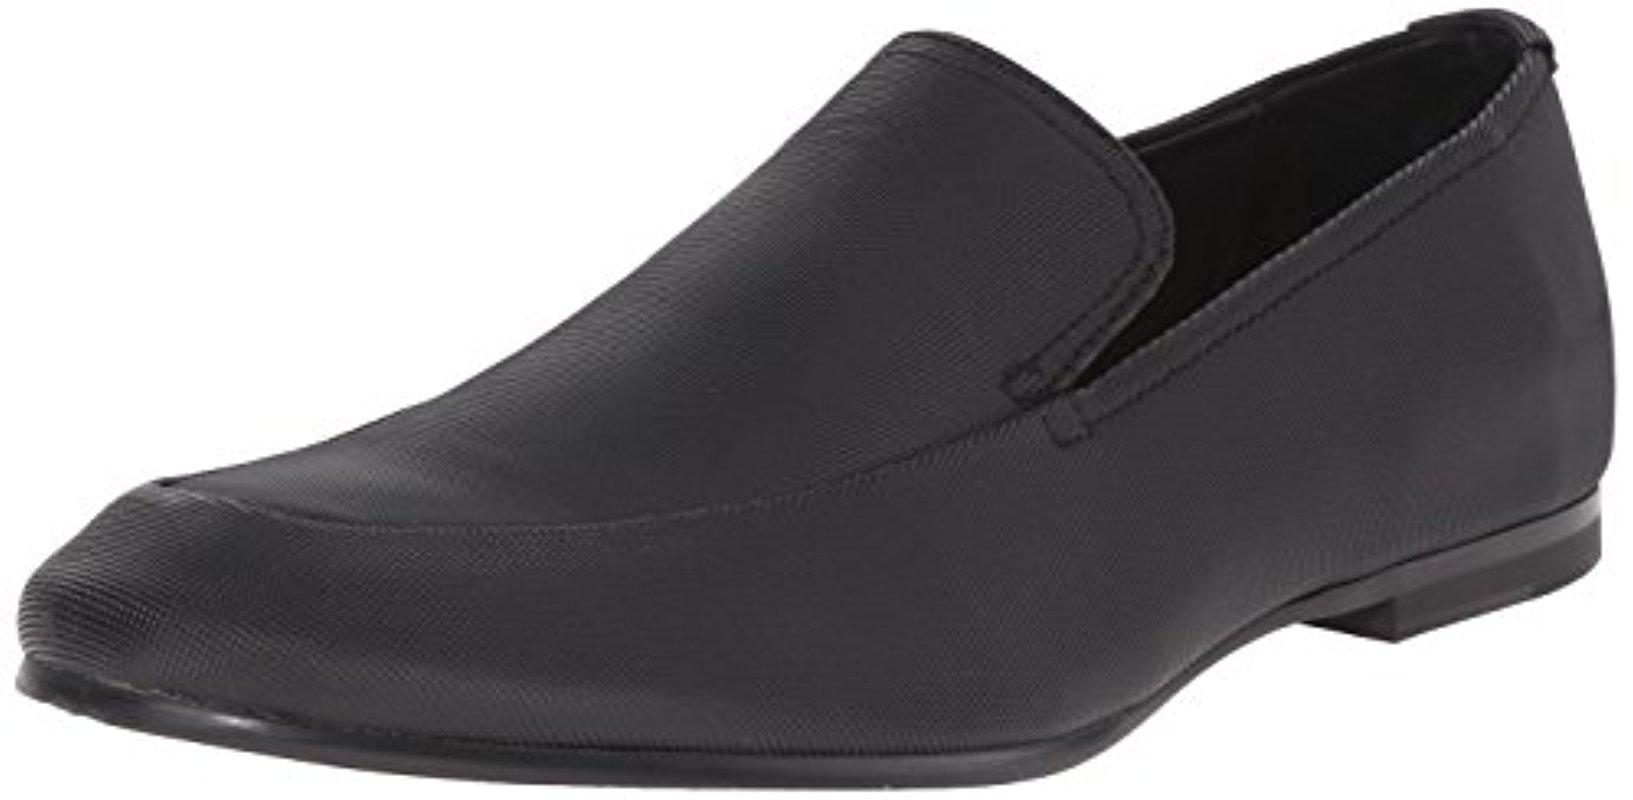 Calvin Klein. Men's Black Nicco Smooth Slip-on Loafer